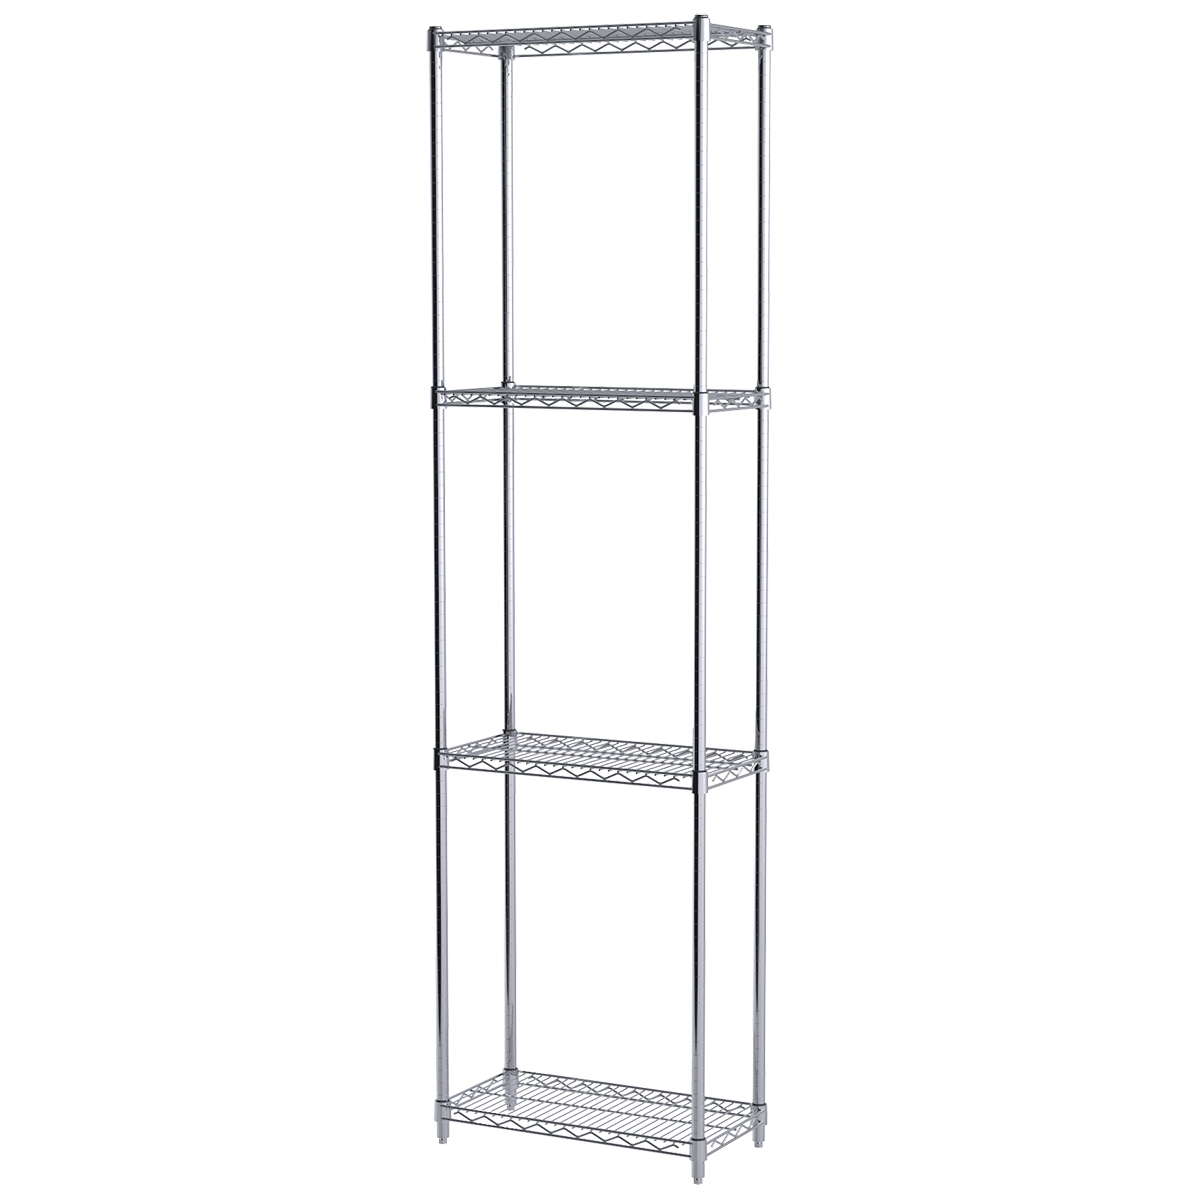 12x24x86, 4-Shelf Wire Shelving Starter Unit, Chrome.  This item sold in carton quantities of 1.